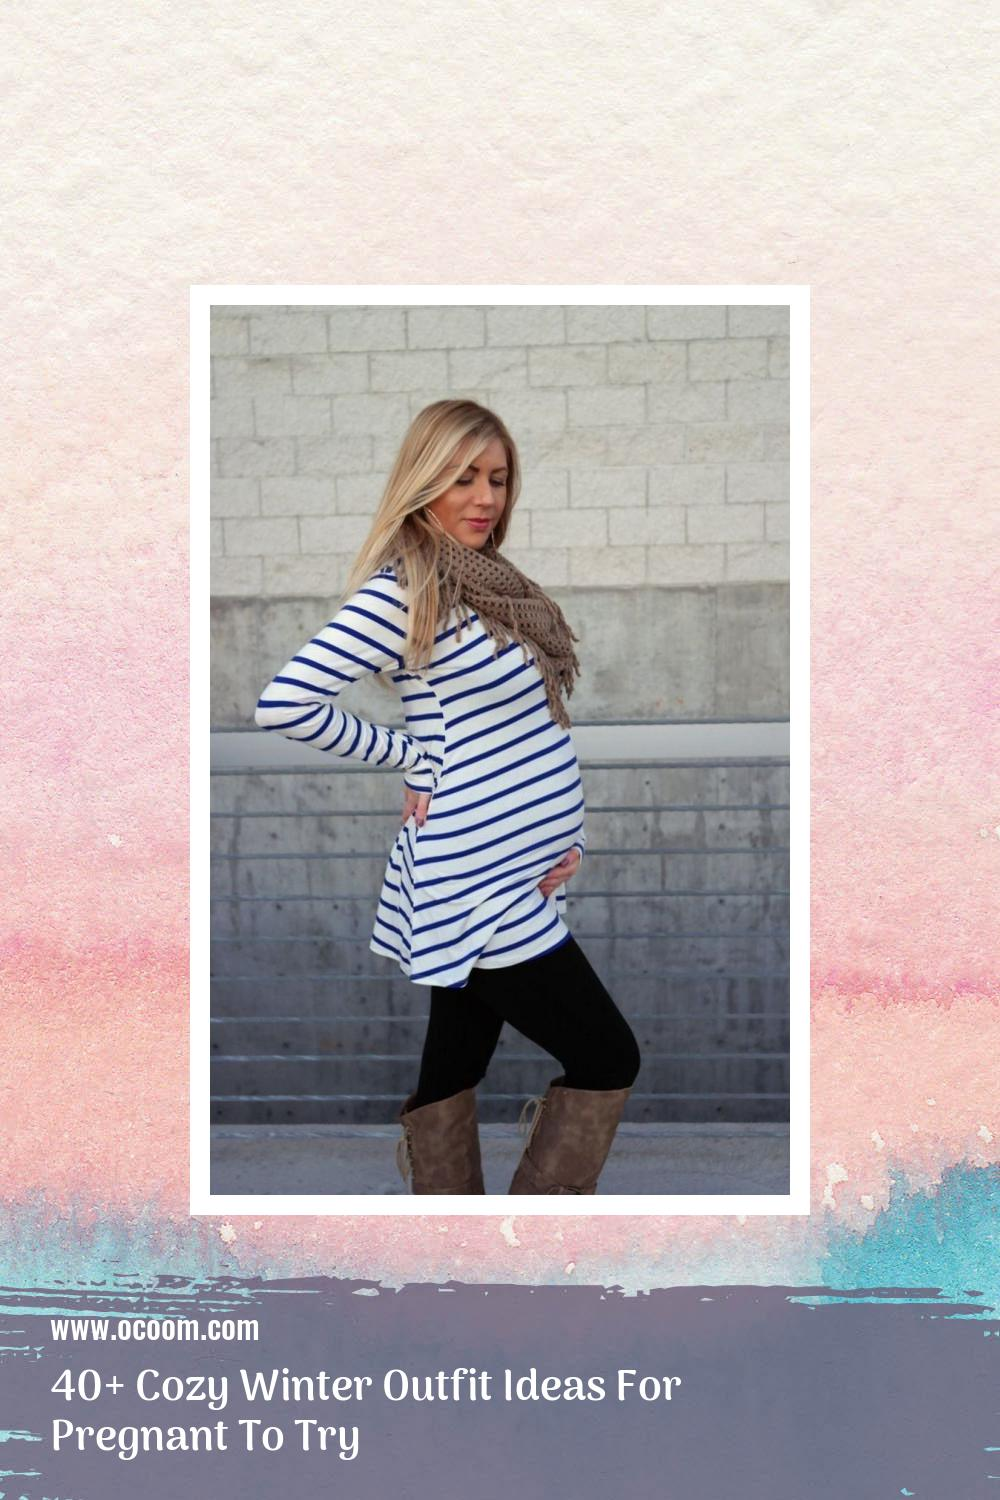 40+ Cozy Winter Outfit Ideas For Pregnant To Try 10